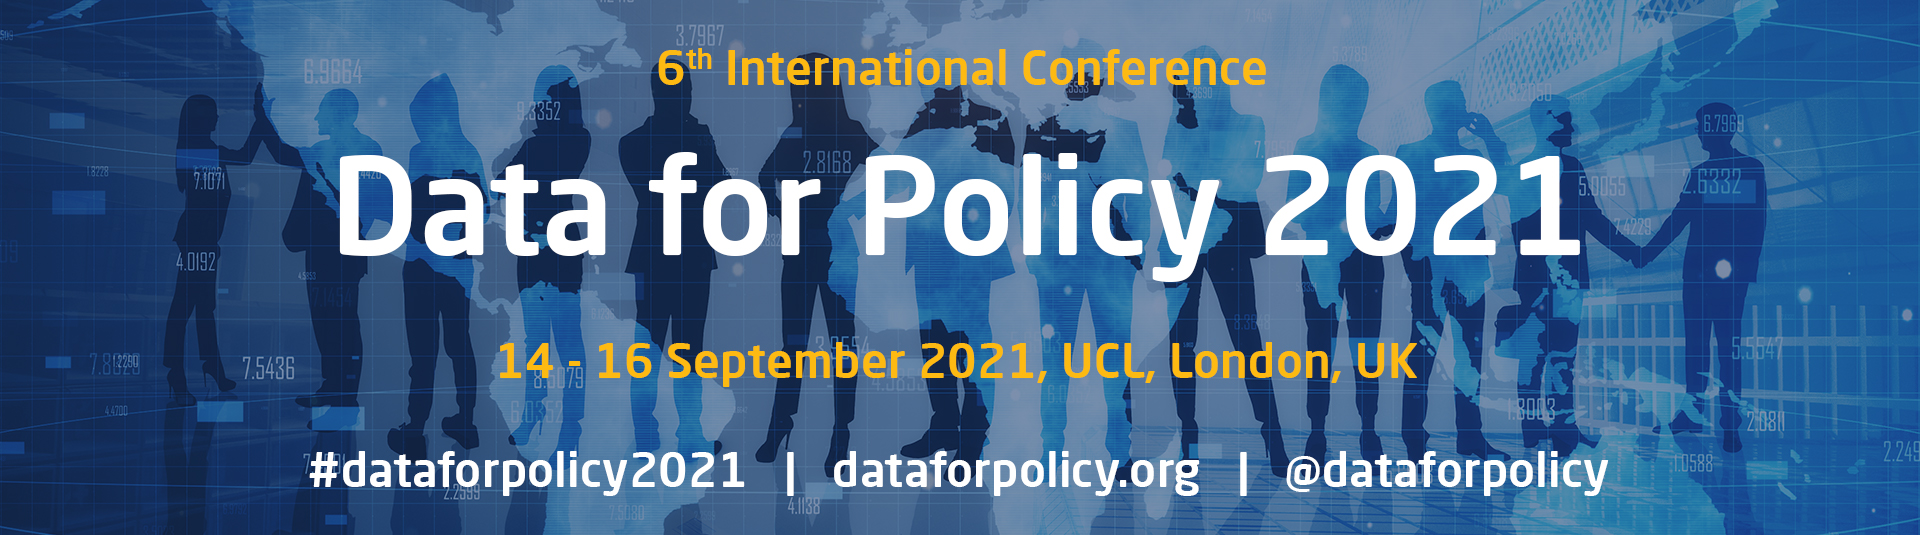 Data for Policy 2021 2